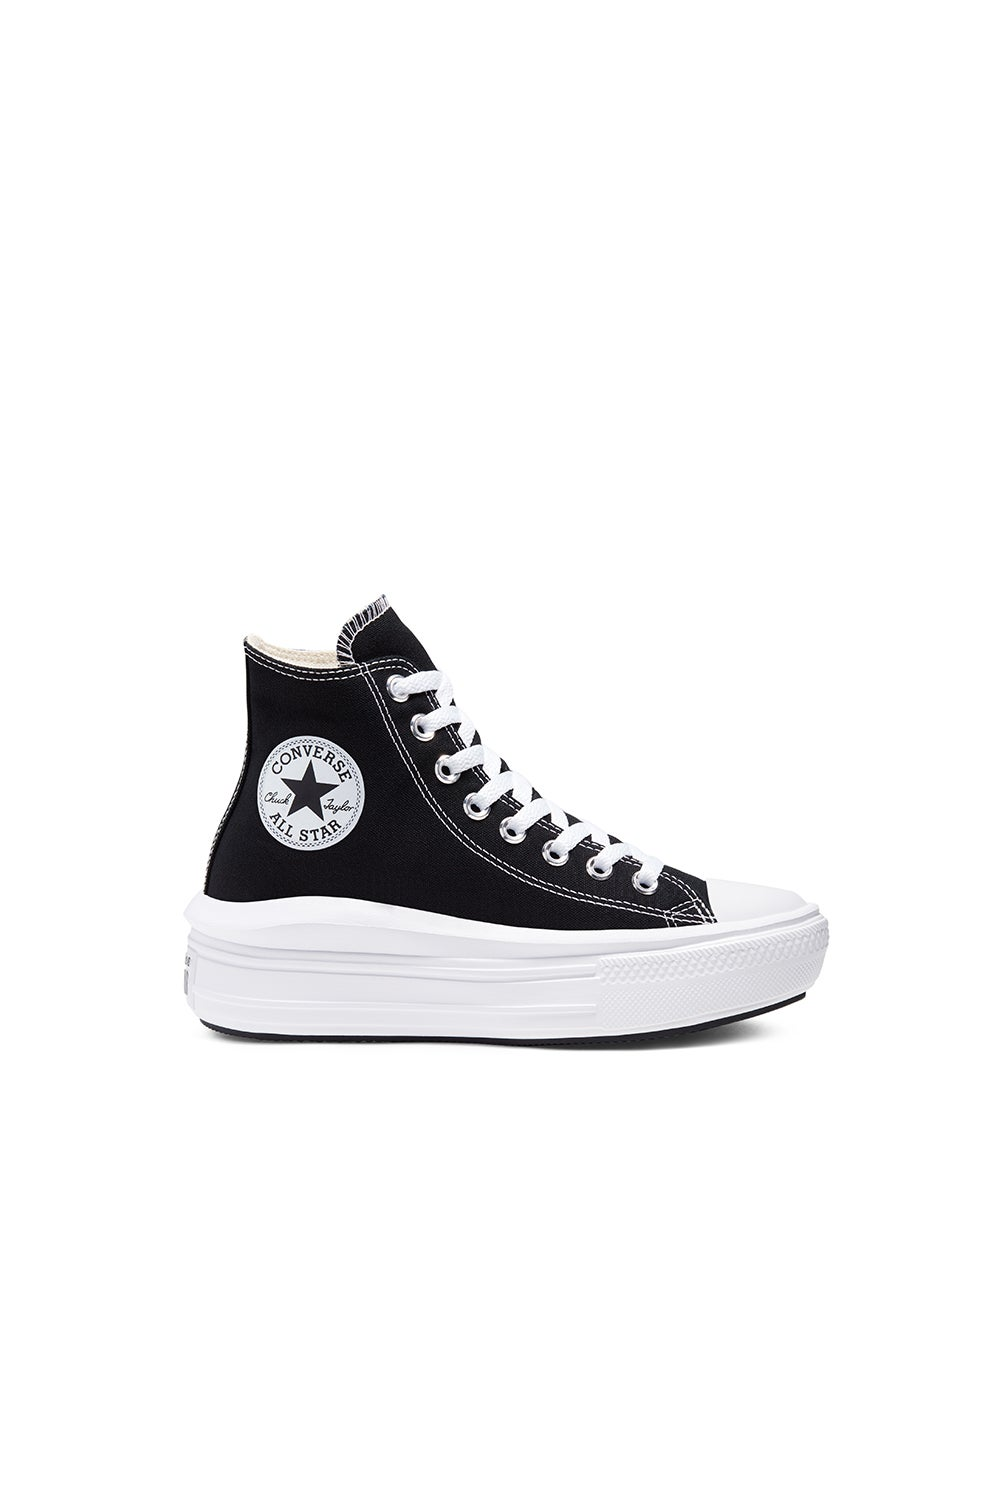 Converse Chuck Taylor All Star Move Platform High Top Black